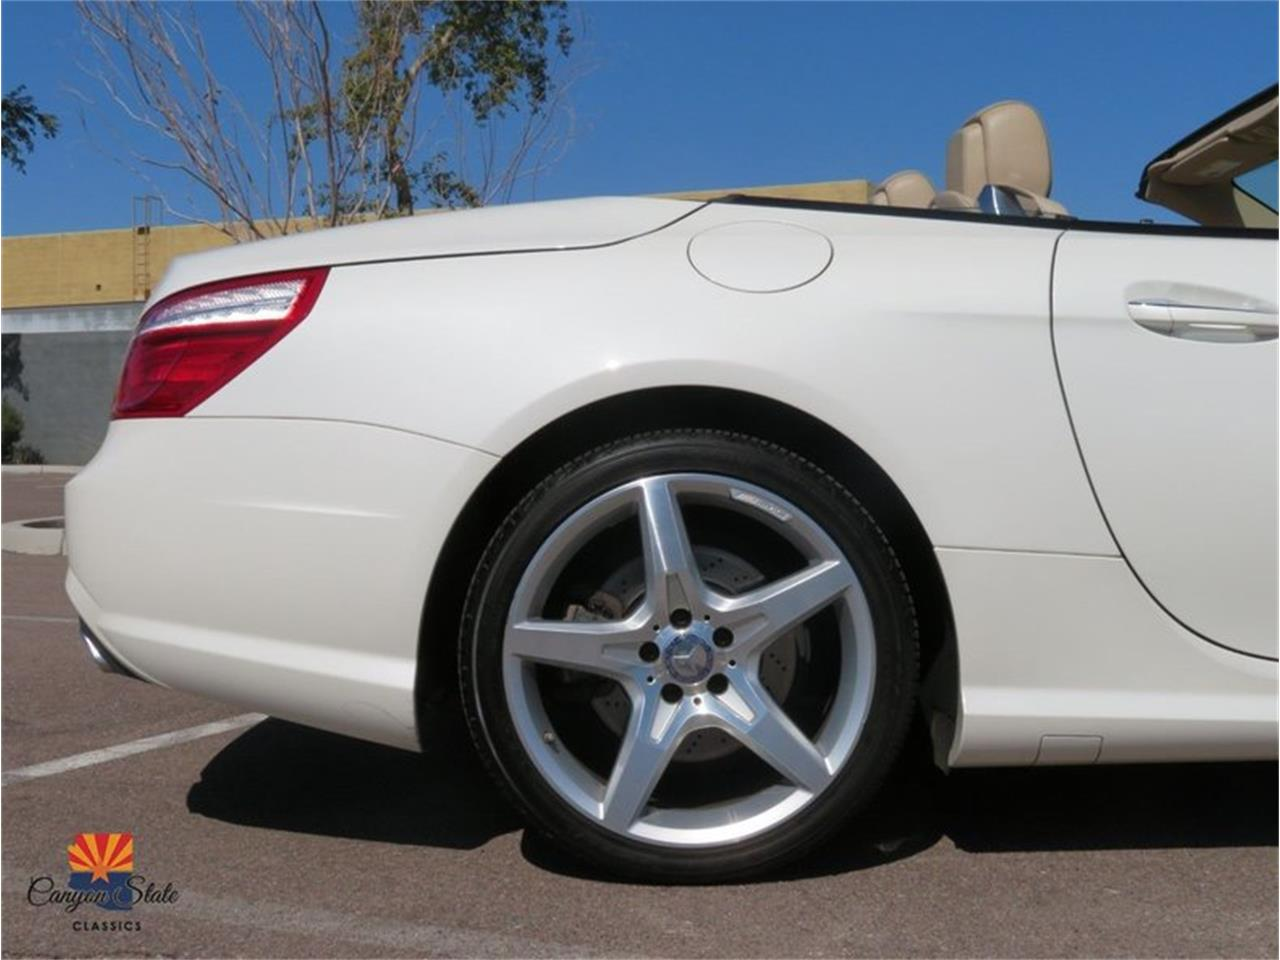 2013 Mercedes-Benz SL-Class for sale in Tempe, AZ – photo 52